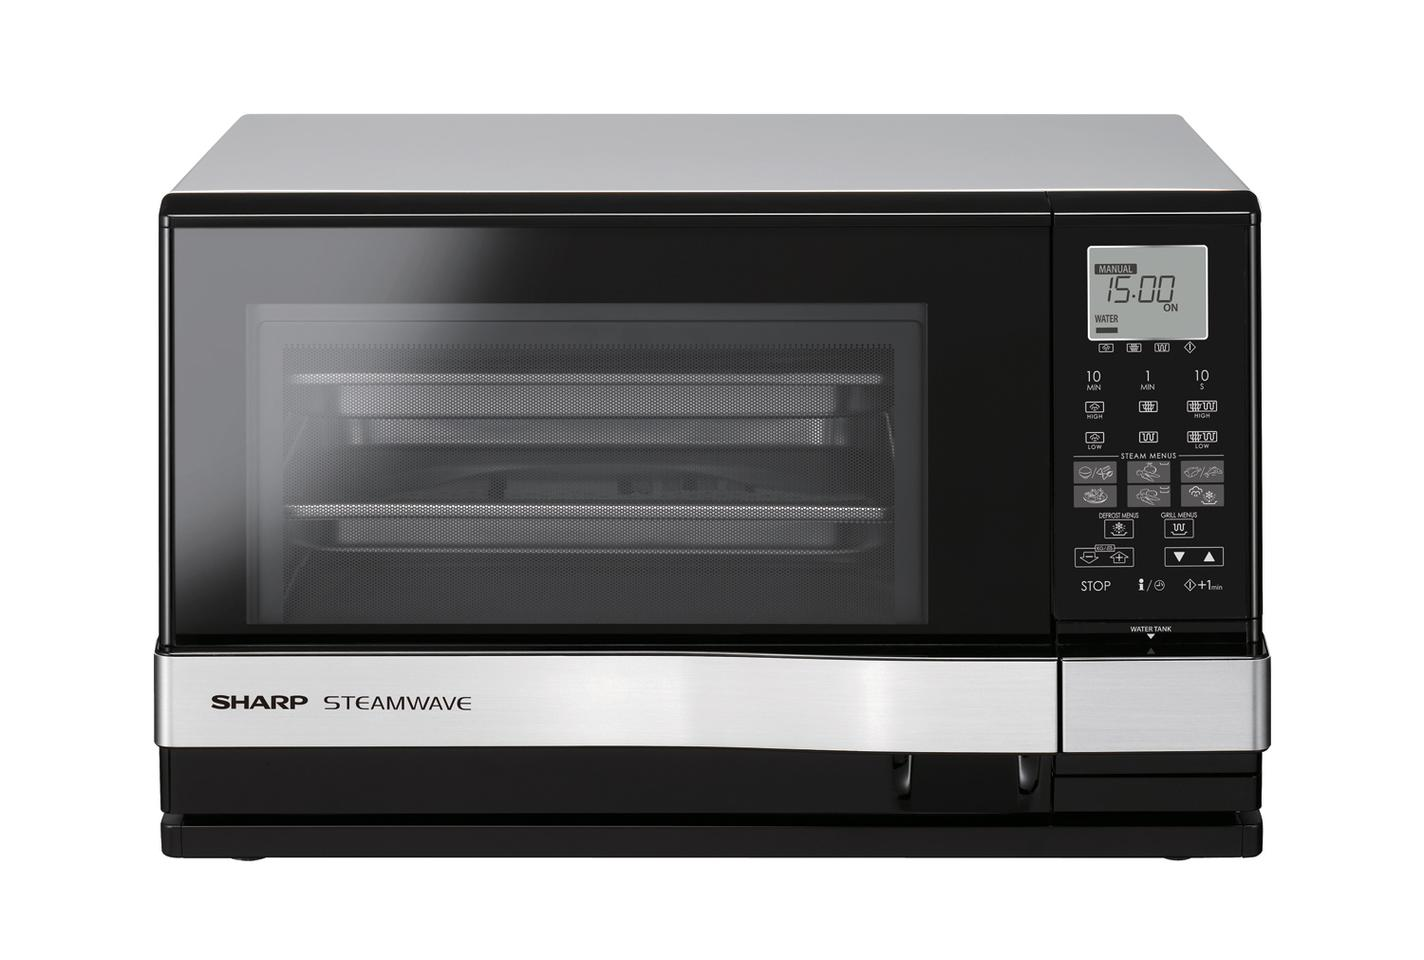 Sharp Shows New 3 In 1 Oven Steam Grill Microwave